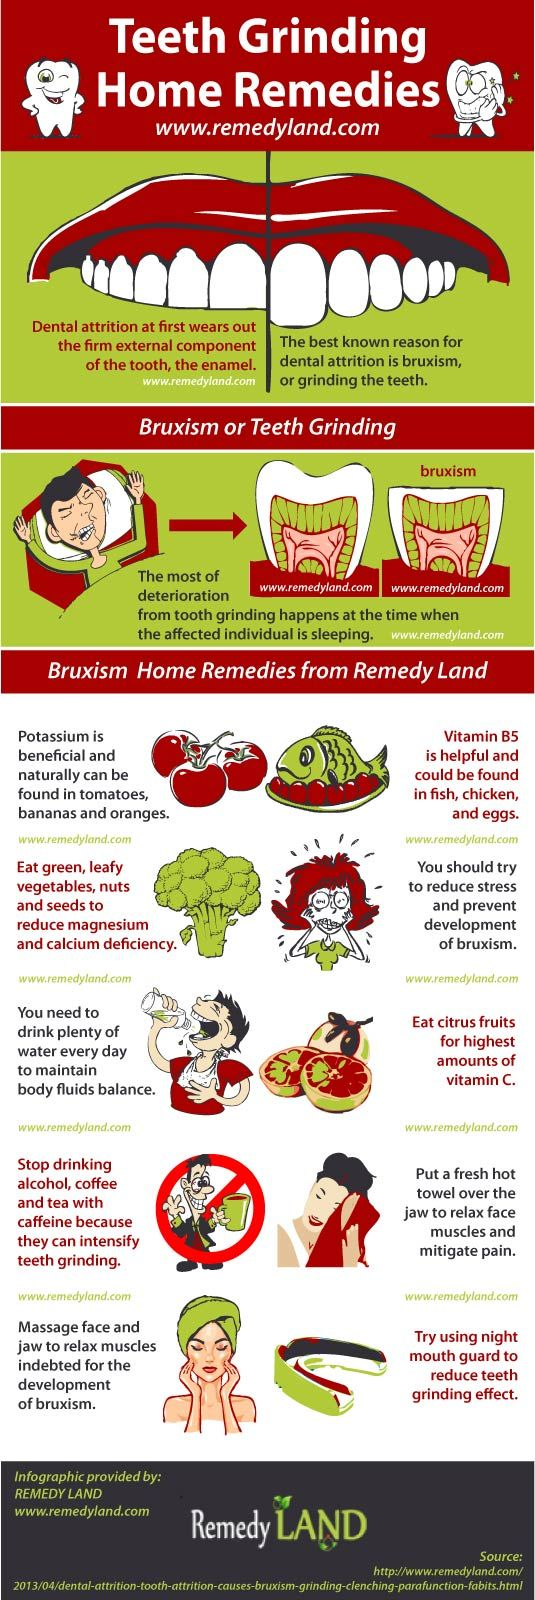 Dental attrition or tooth attrition causes: bruxism or grinding the teeth, clenching - parafunction habits - Remedy Land #bruxism #teethgrinding #homeremedies